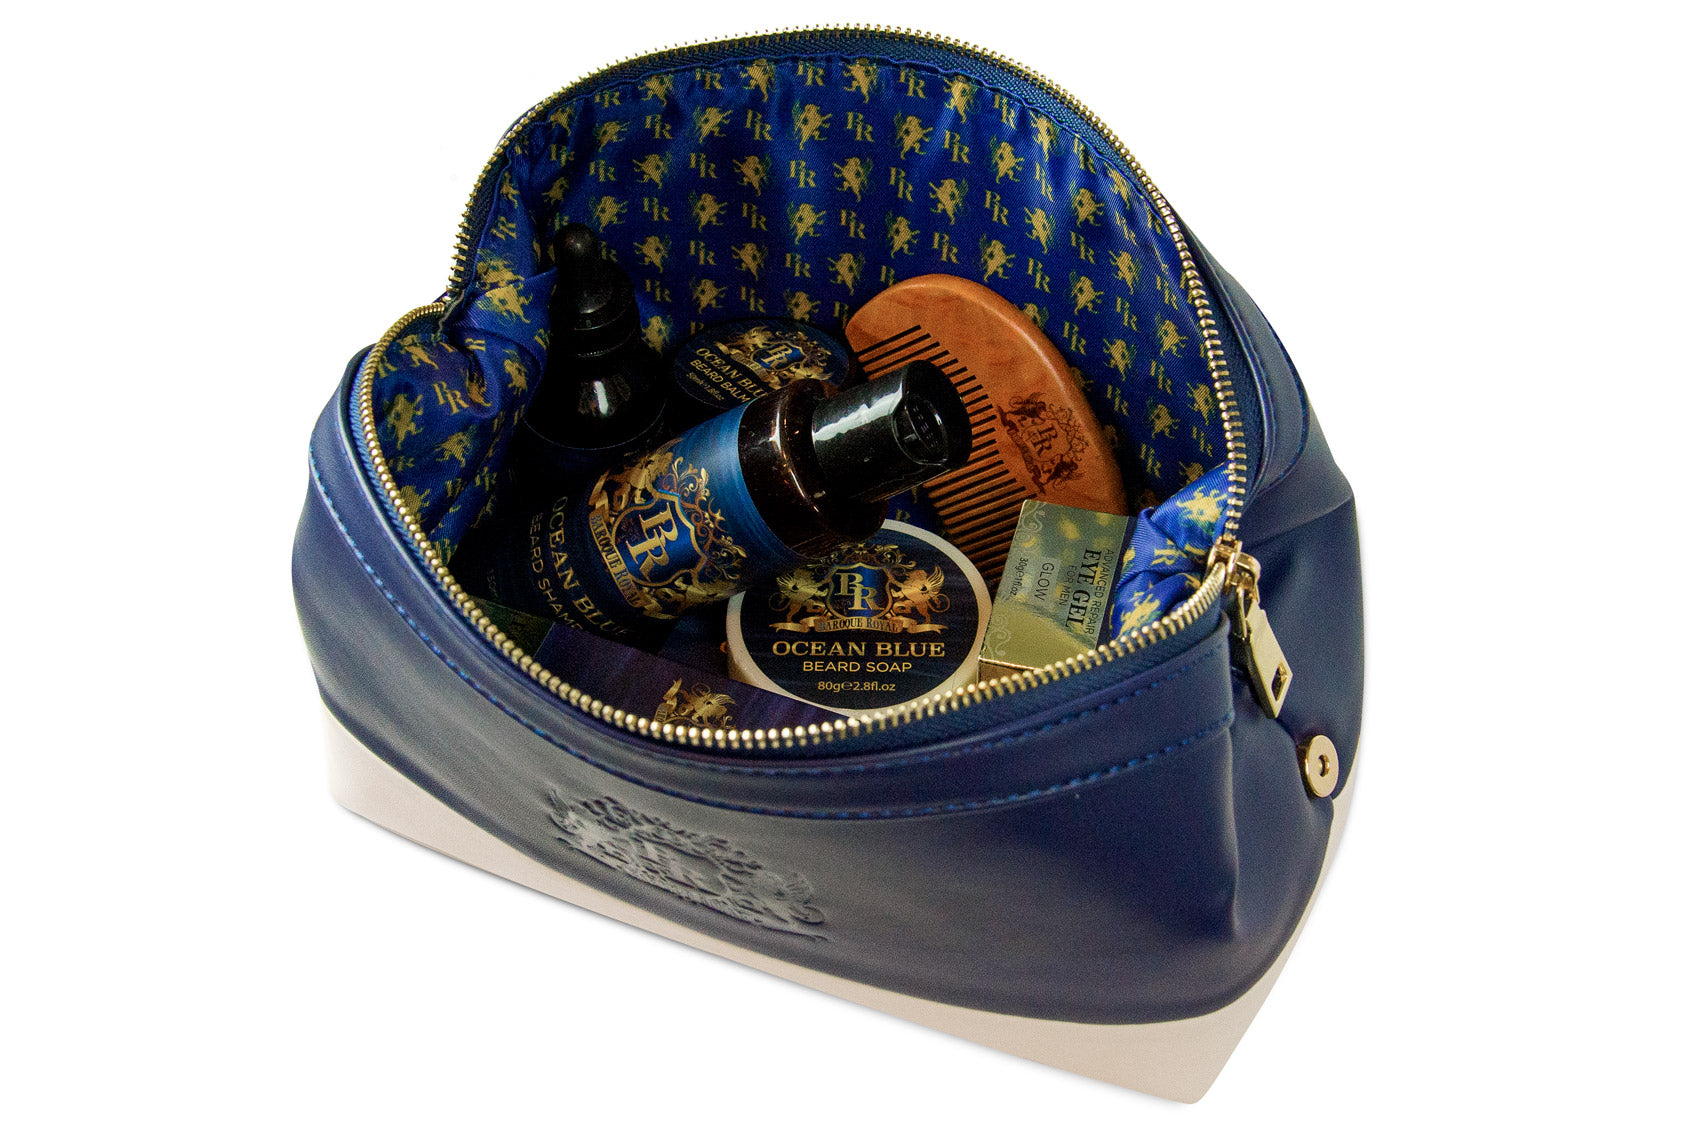 Baroque Royal Toiletry Bag